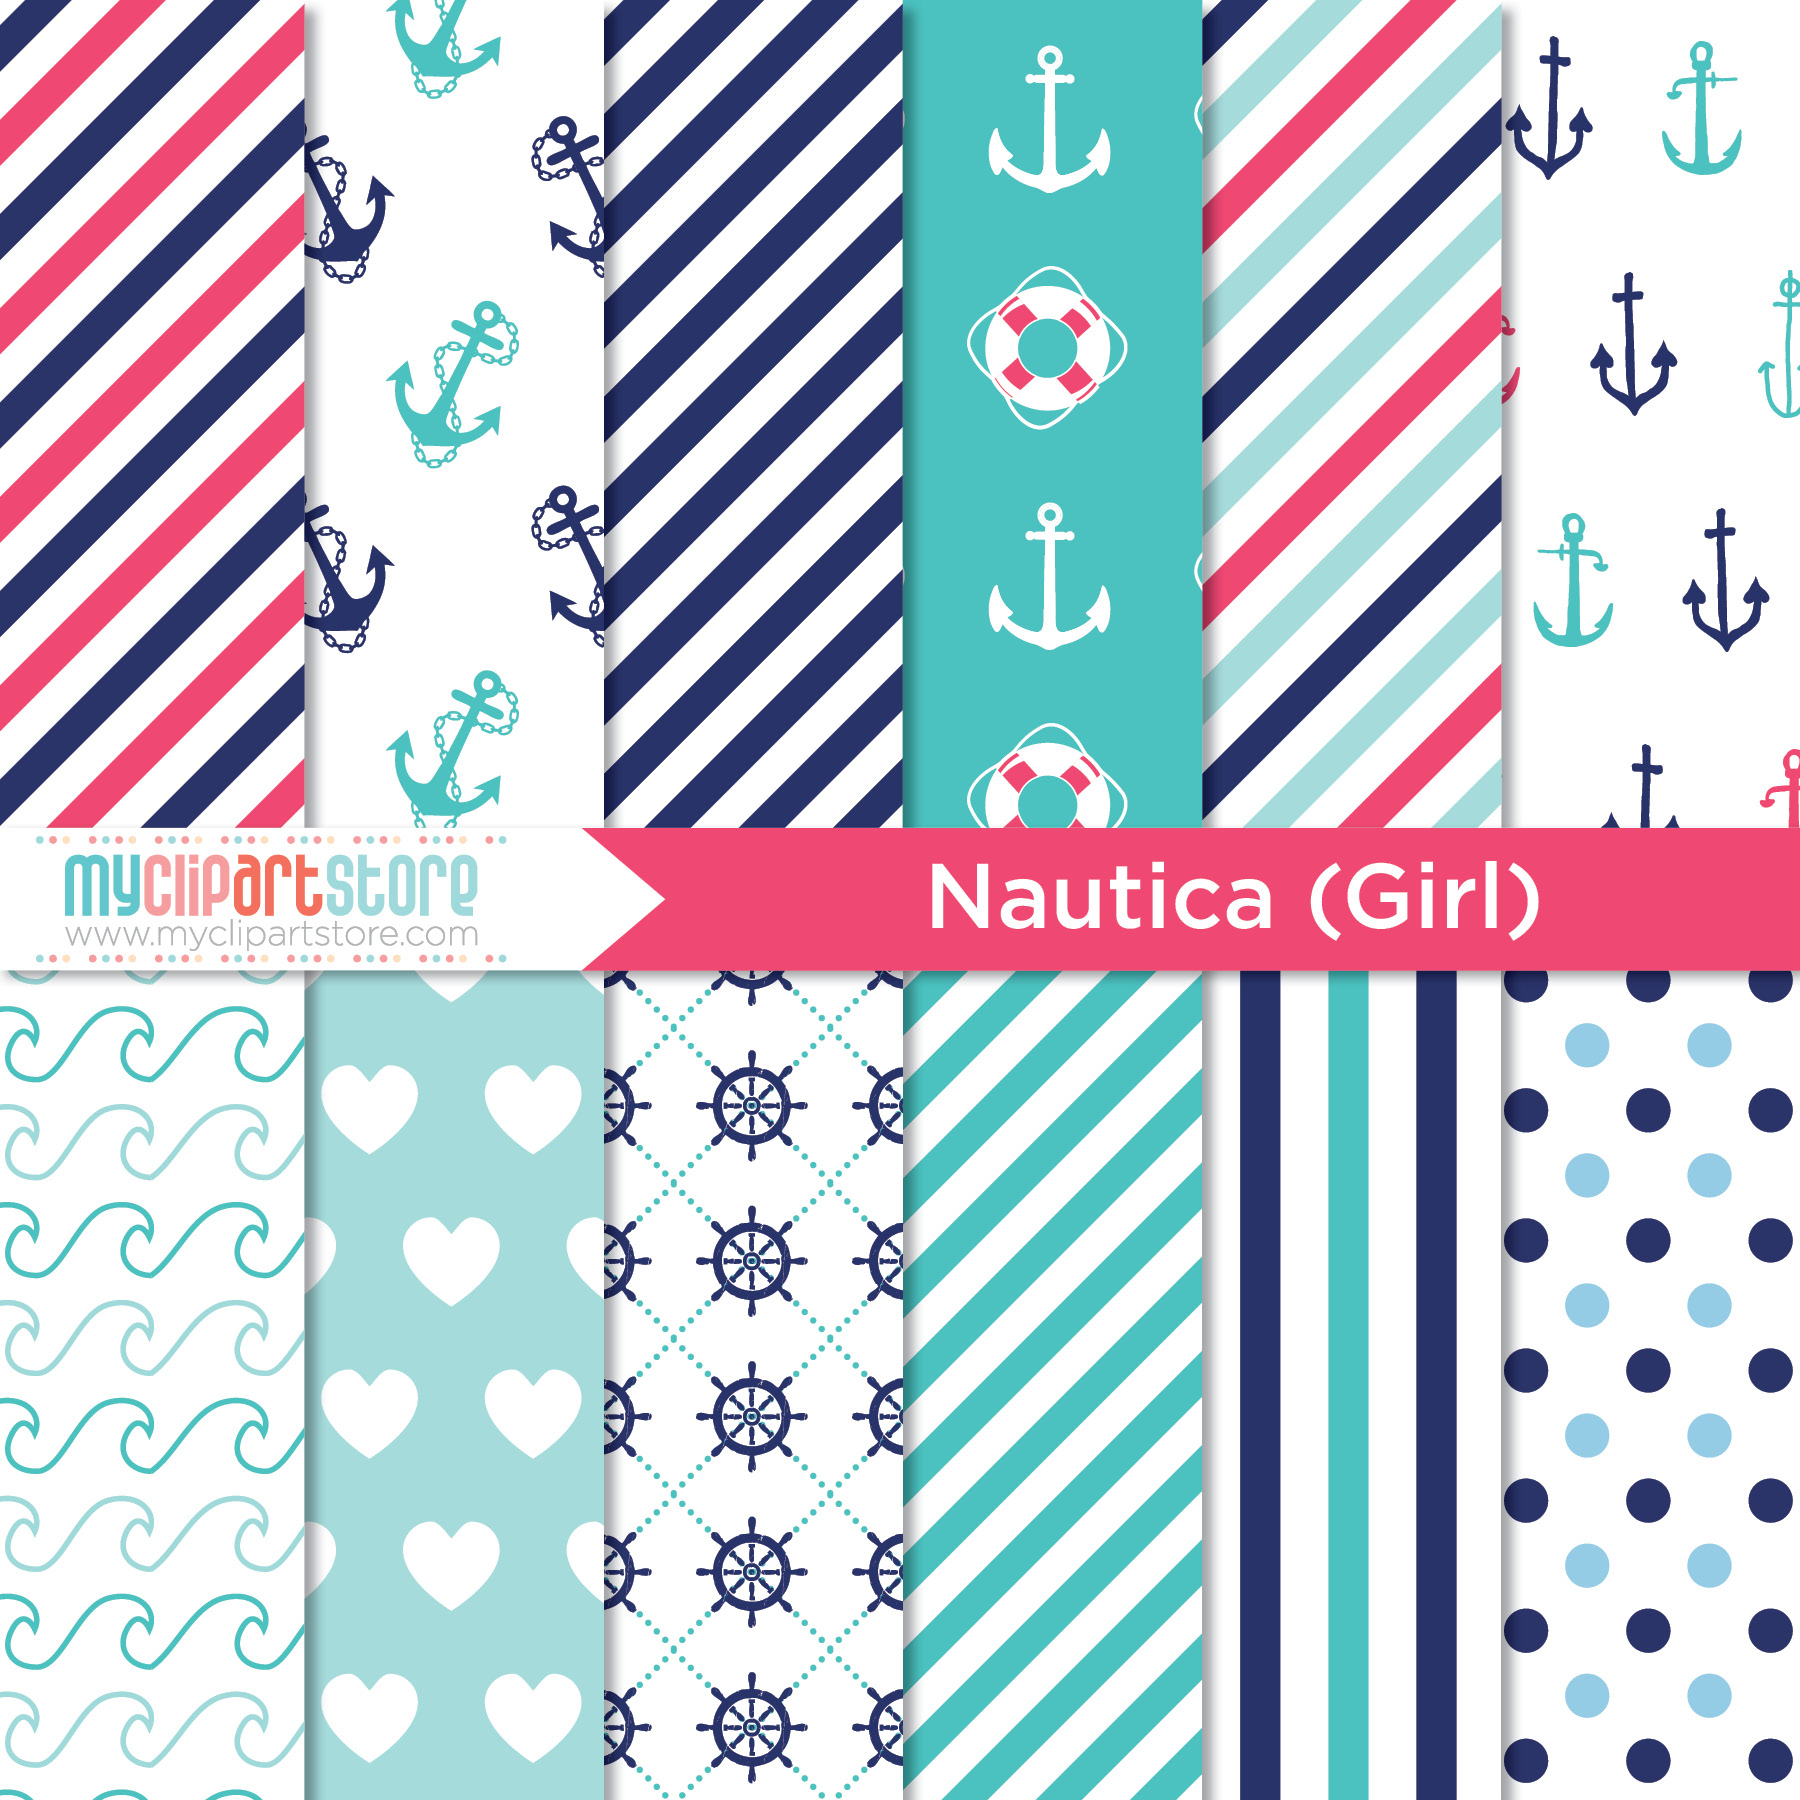 Nautical Embroidery Patterns Nautical Girl Clipart Combo